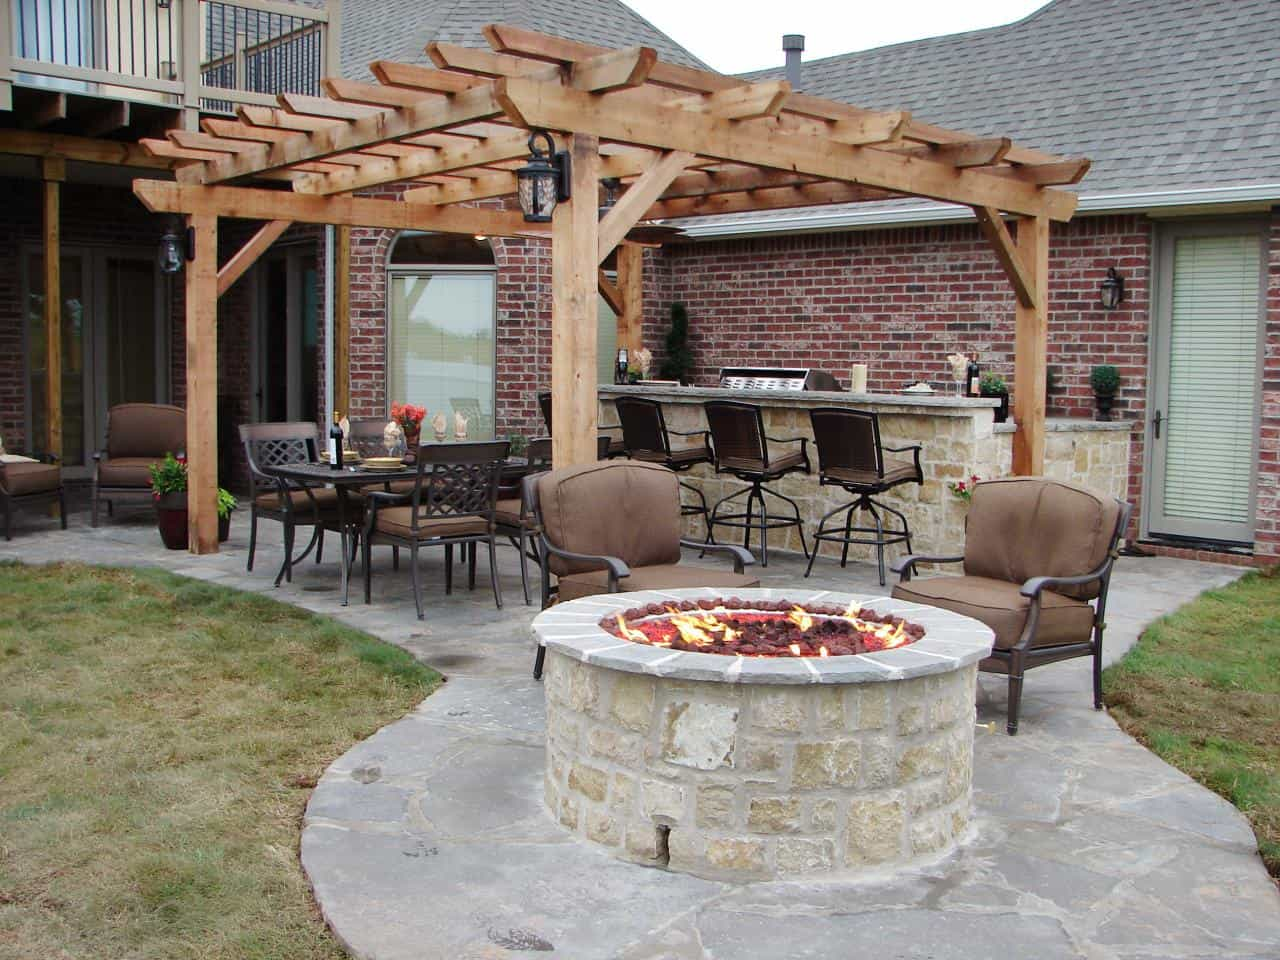 15 Outdoor Kitchen Designs That You Can Help DIY on Small Outdoor Fireplace Ideas id=29338